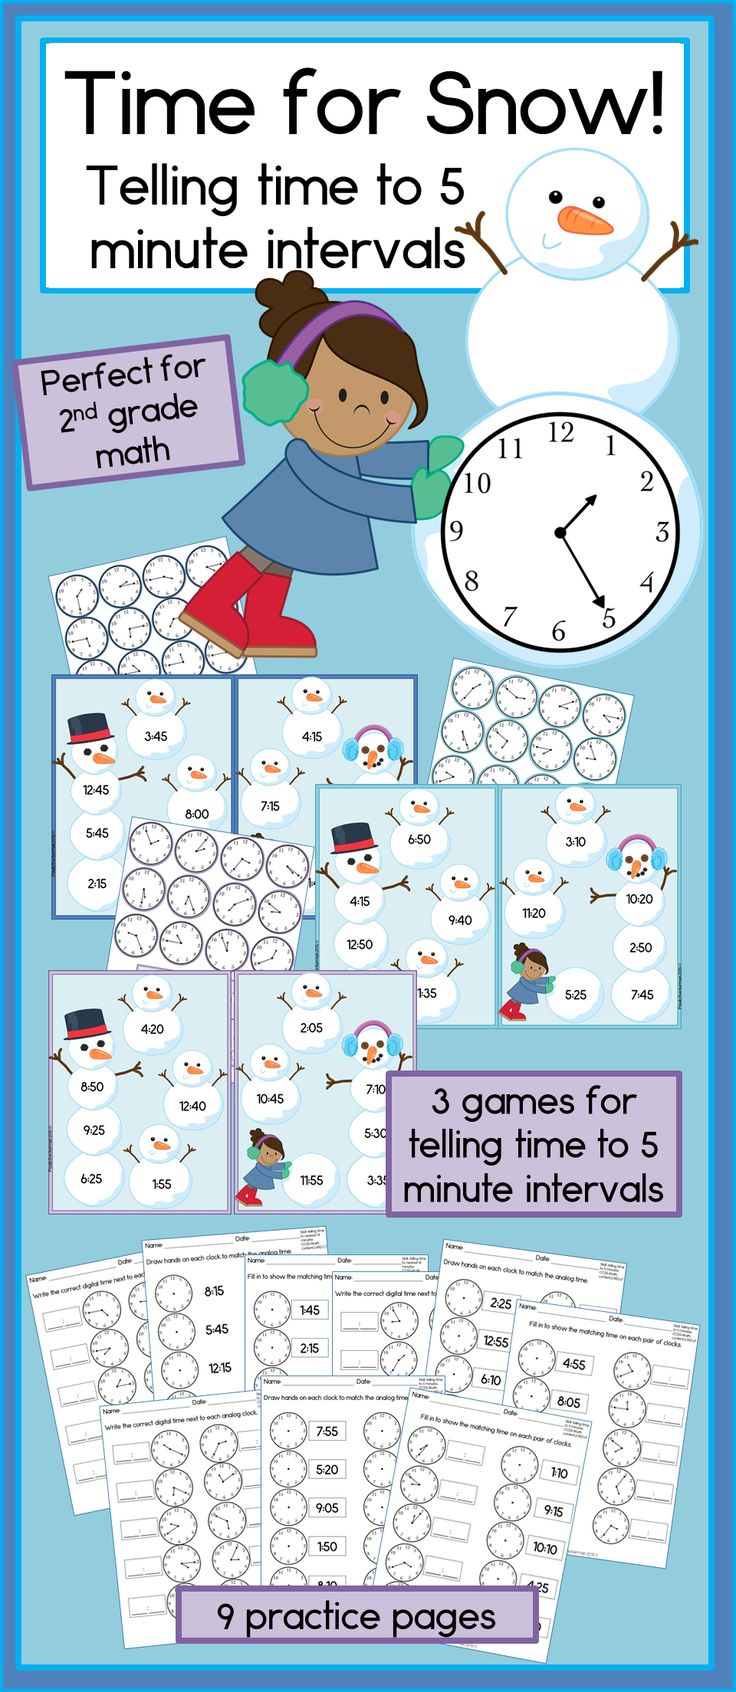 798 best Math images on Pinterest | Teaching ideas, Teaching math ...